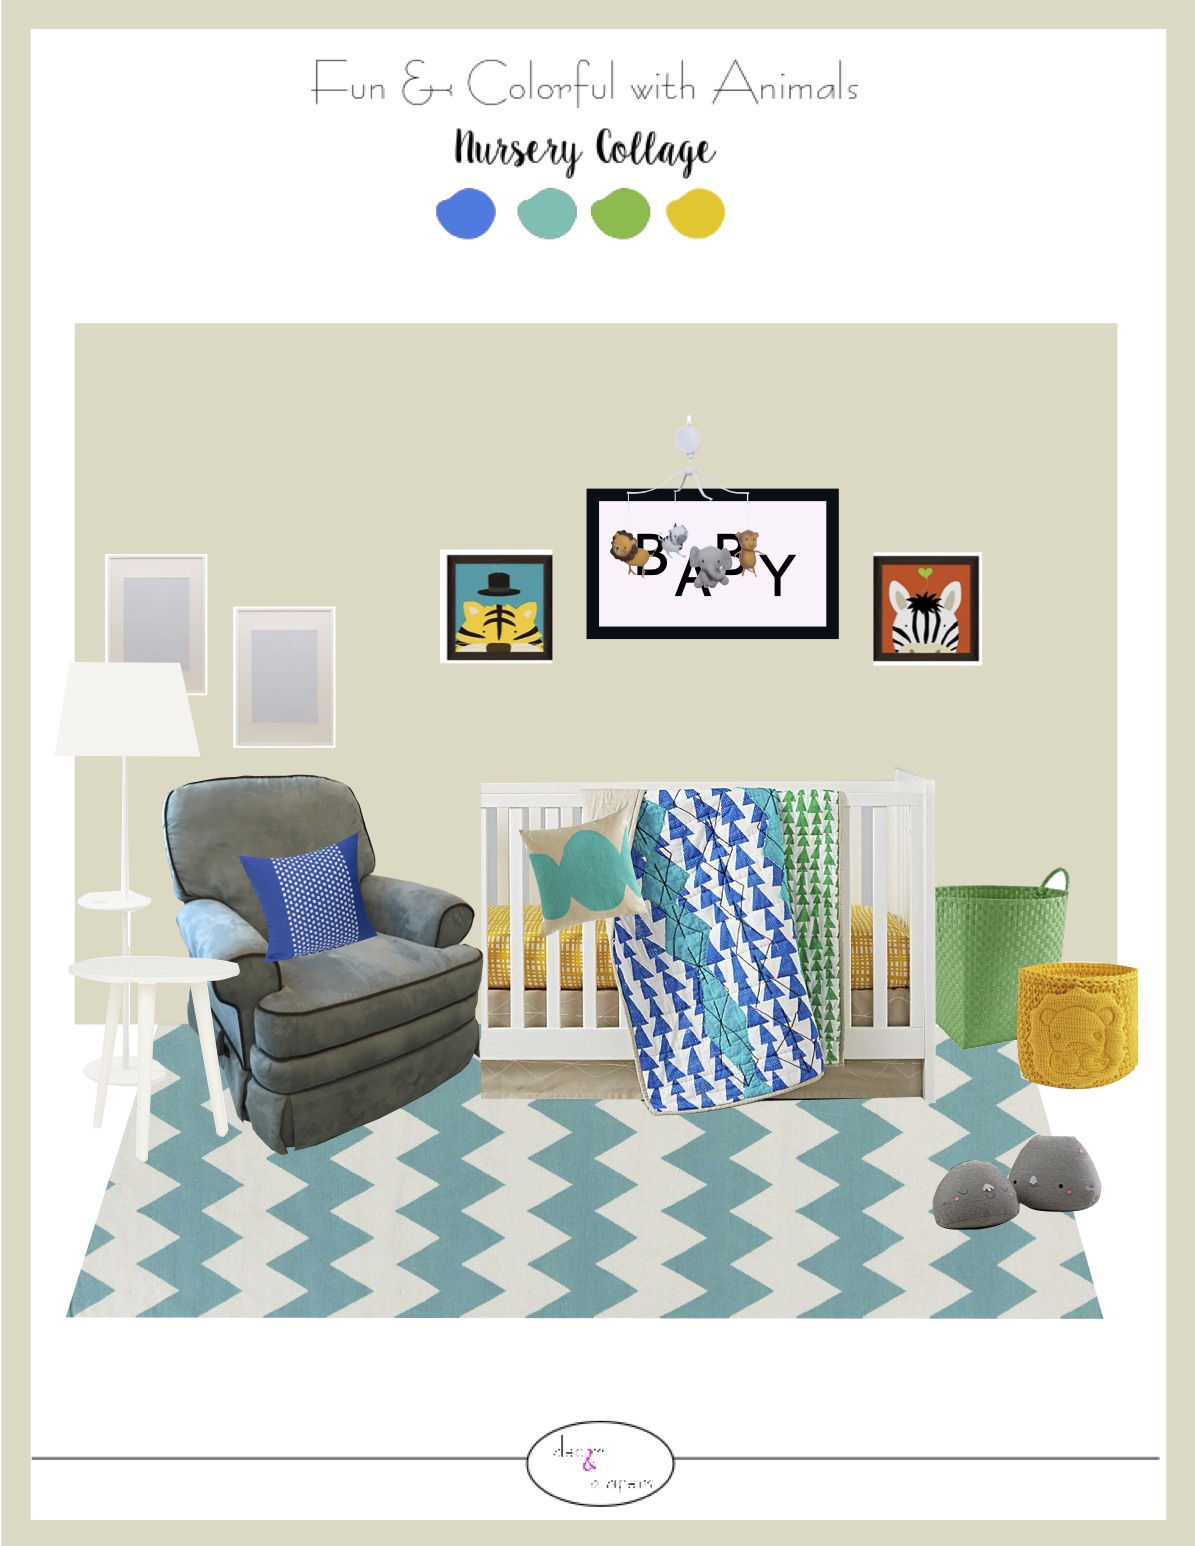 3D Wall Collage - Take a step into your new room! Here is a colorful visualization of the feature wall in your room.